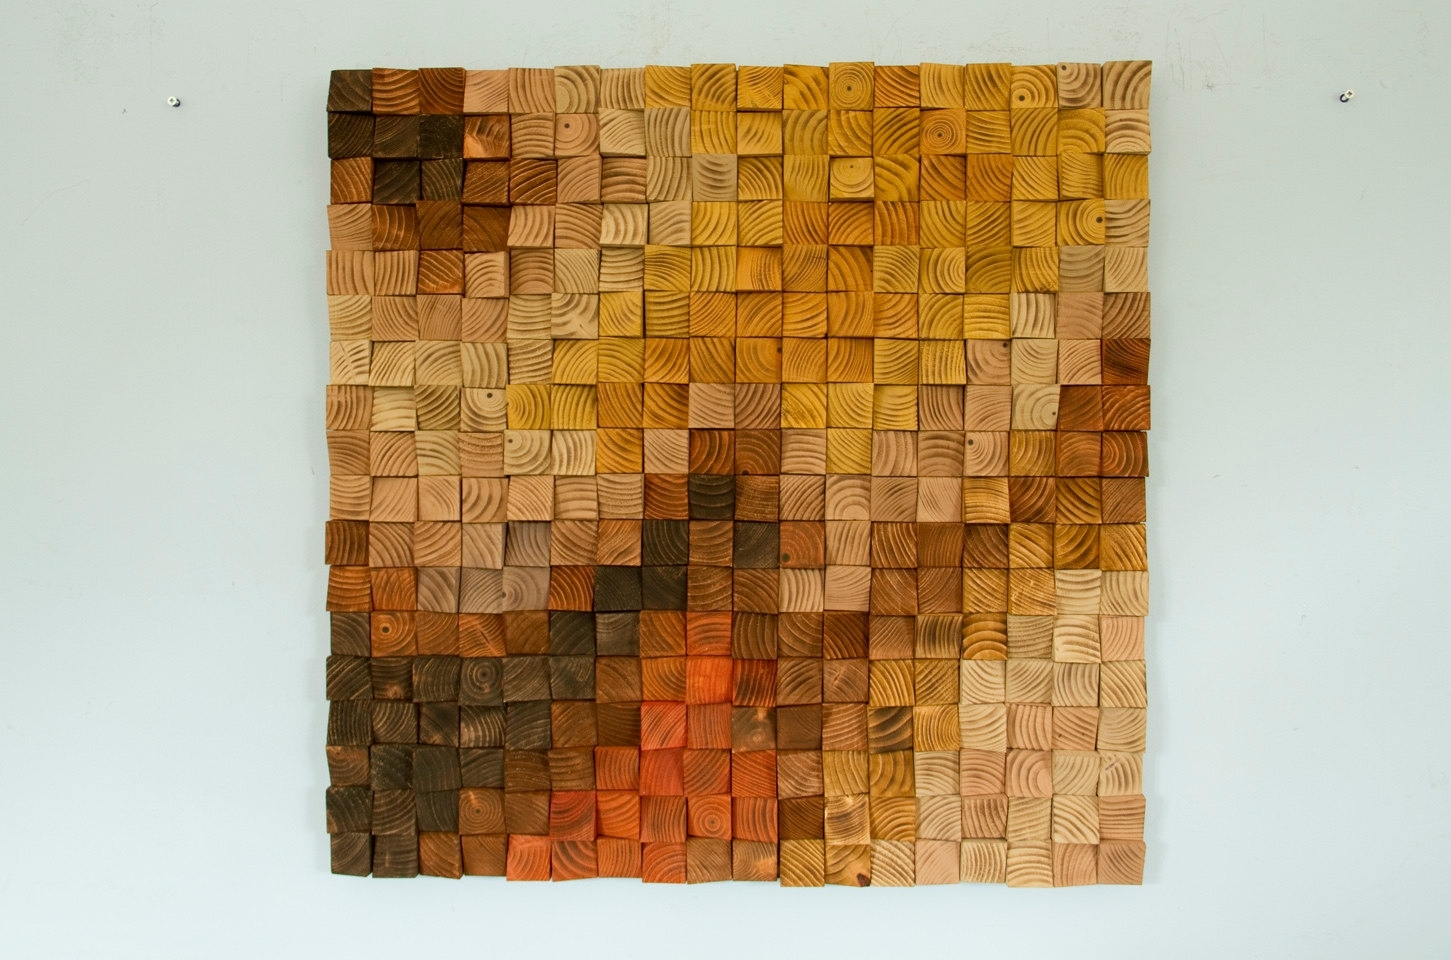 Large Rustic Wood Wall Art, Wood Wall Sculpture, Abstract Painting Throughout Latest Sculpture Abstract Wall Art (View 19 of 20)